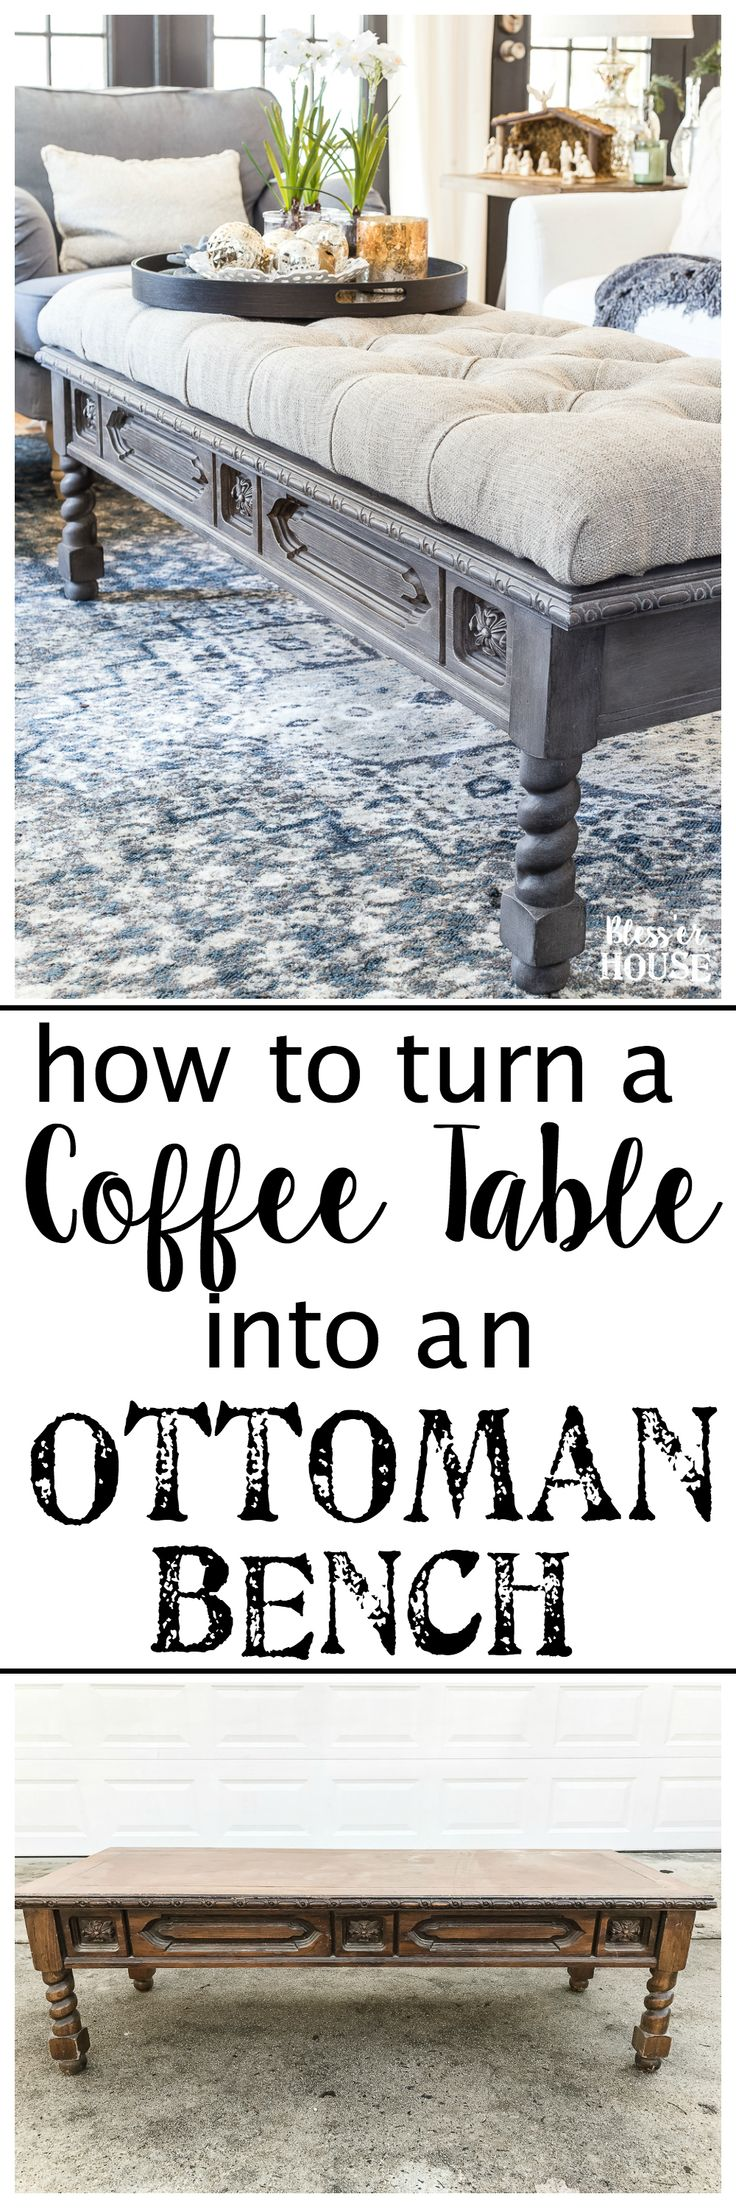 DIY Ottoman Bench from a Repurposed Thrift Store Coffee Table | blesserhouse.com - How to repurpose an old coffee table into a designer-inspired ottoman bench with tips for getting a faux weathered wood look and how to tuft upholstery #furnituremakeover #ottoman #coffeetable